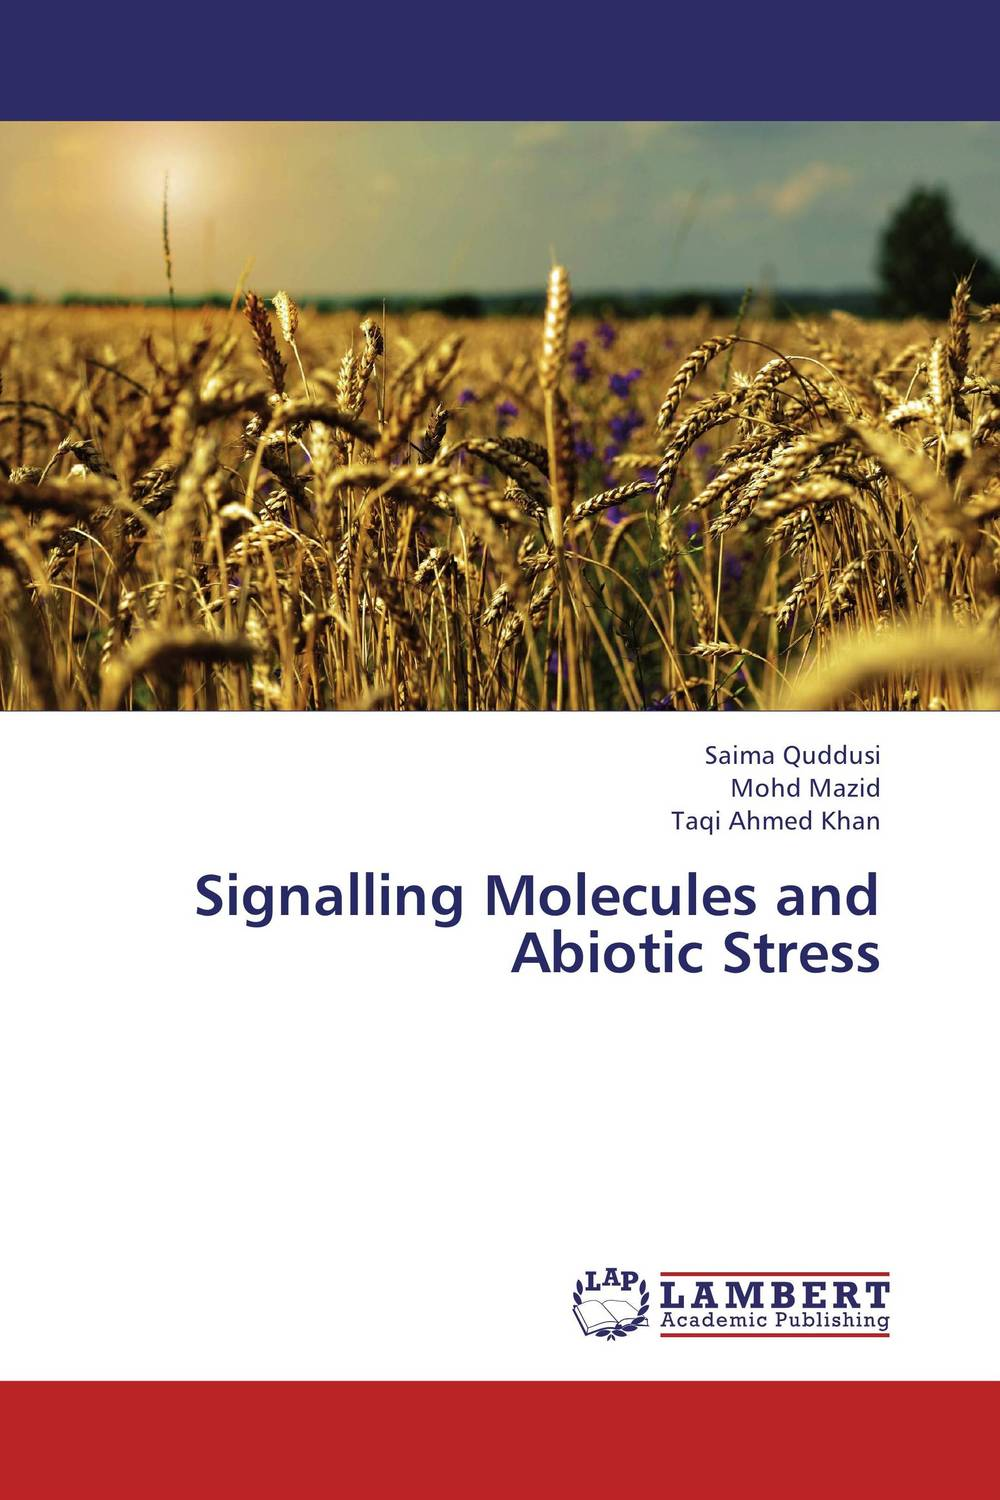 Signalling Molecules and Abiotic Stress stress signalling and breast cancer development